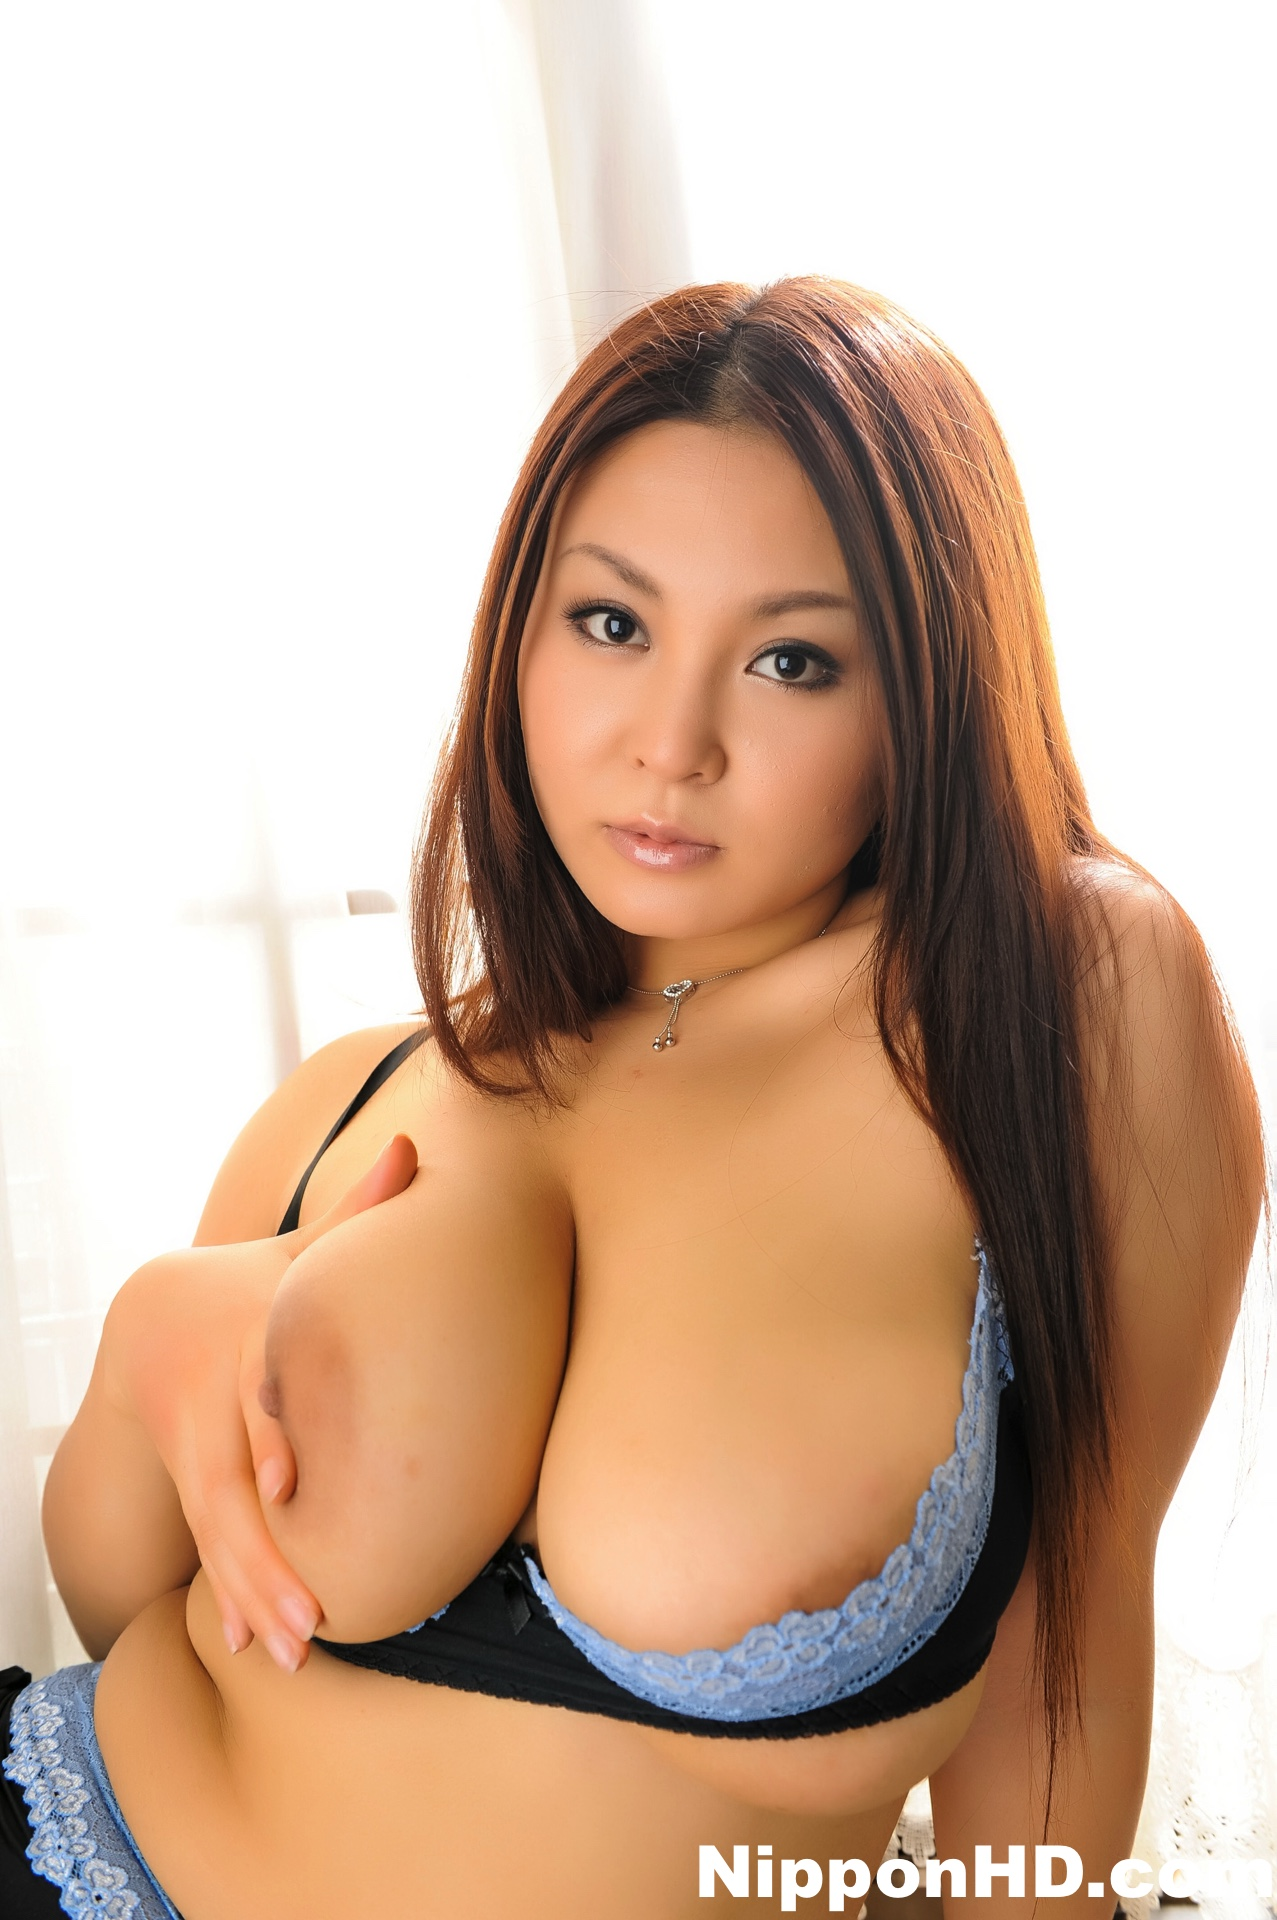 hosted staxxx fhg resGals photo nipponHD nipponhd148v 2